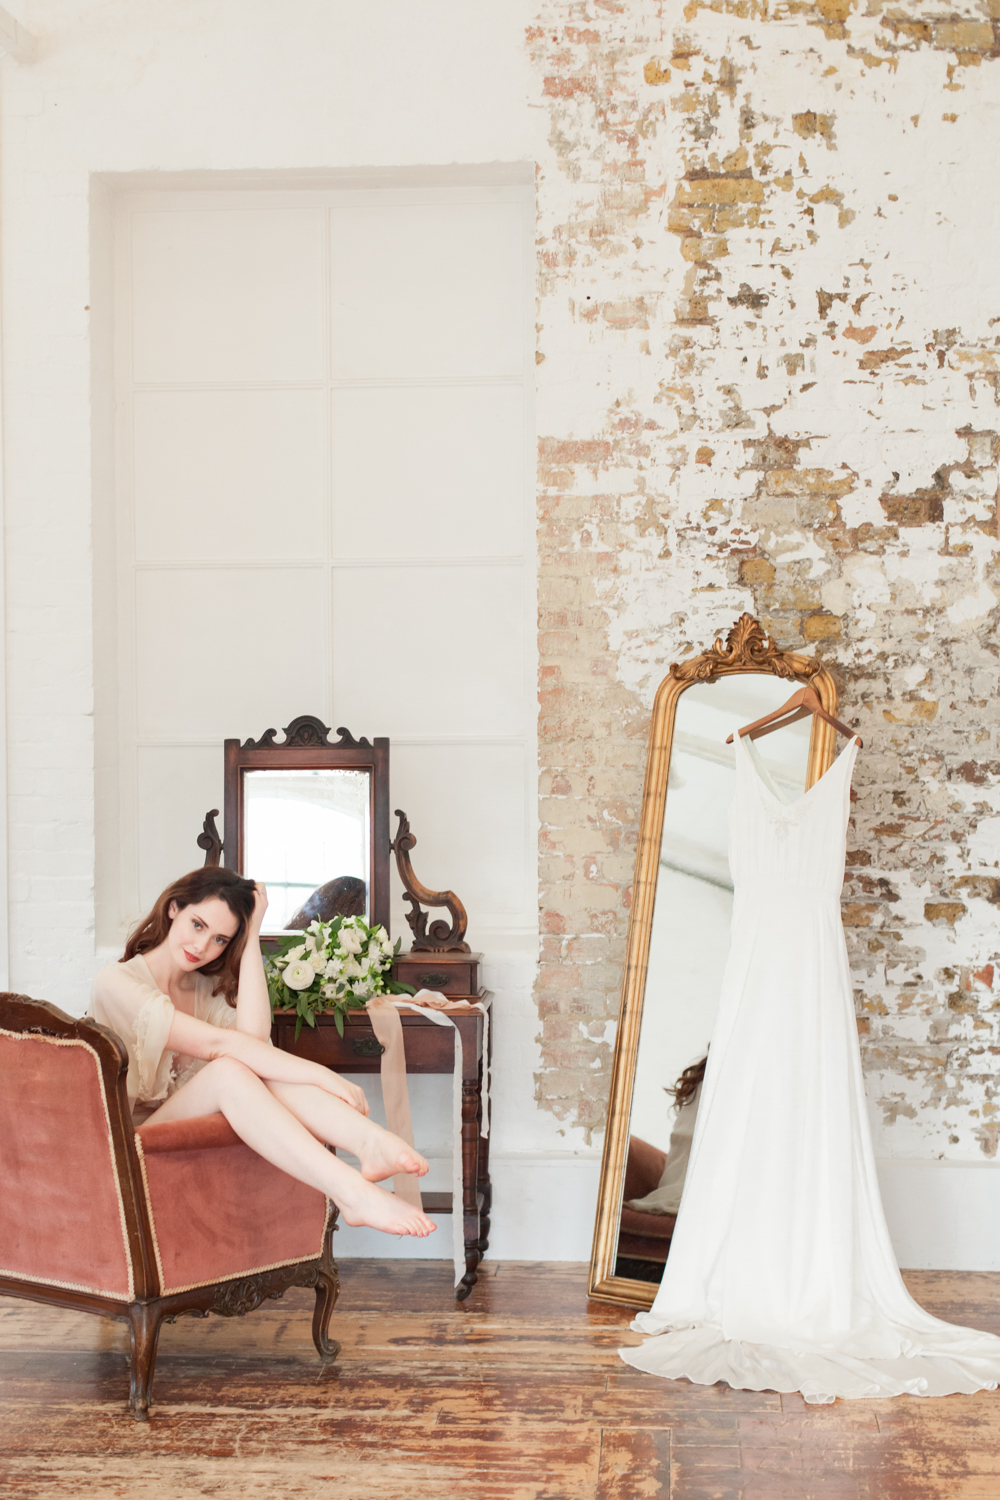 The Timeless Stylist - Romantic Wedding Styling UK